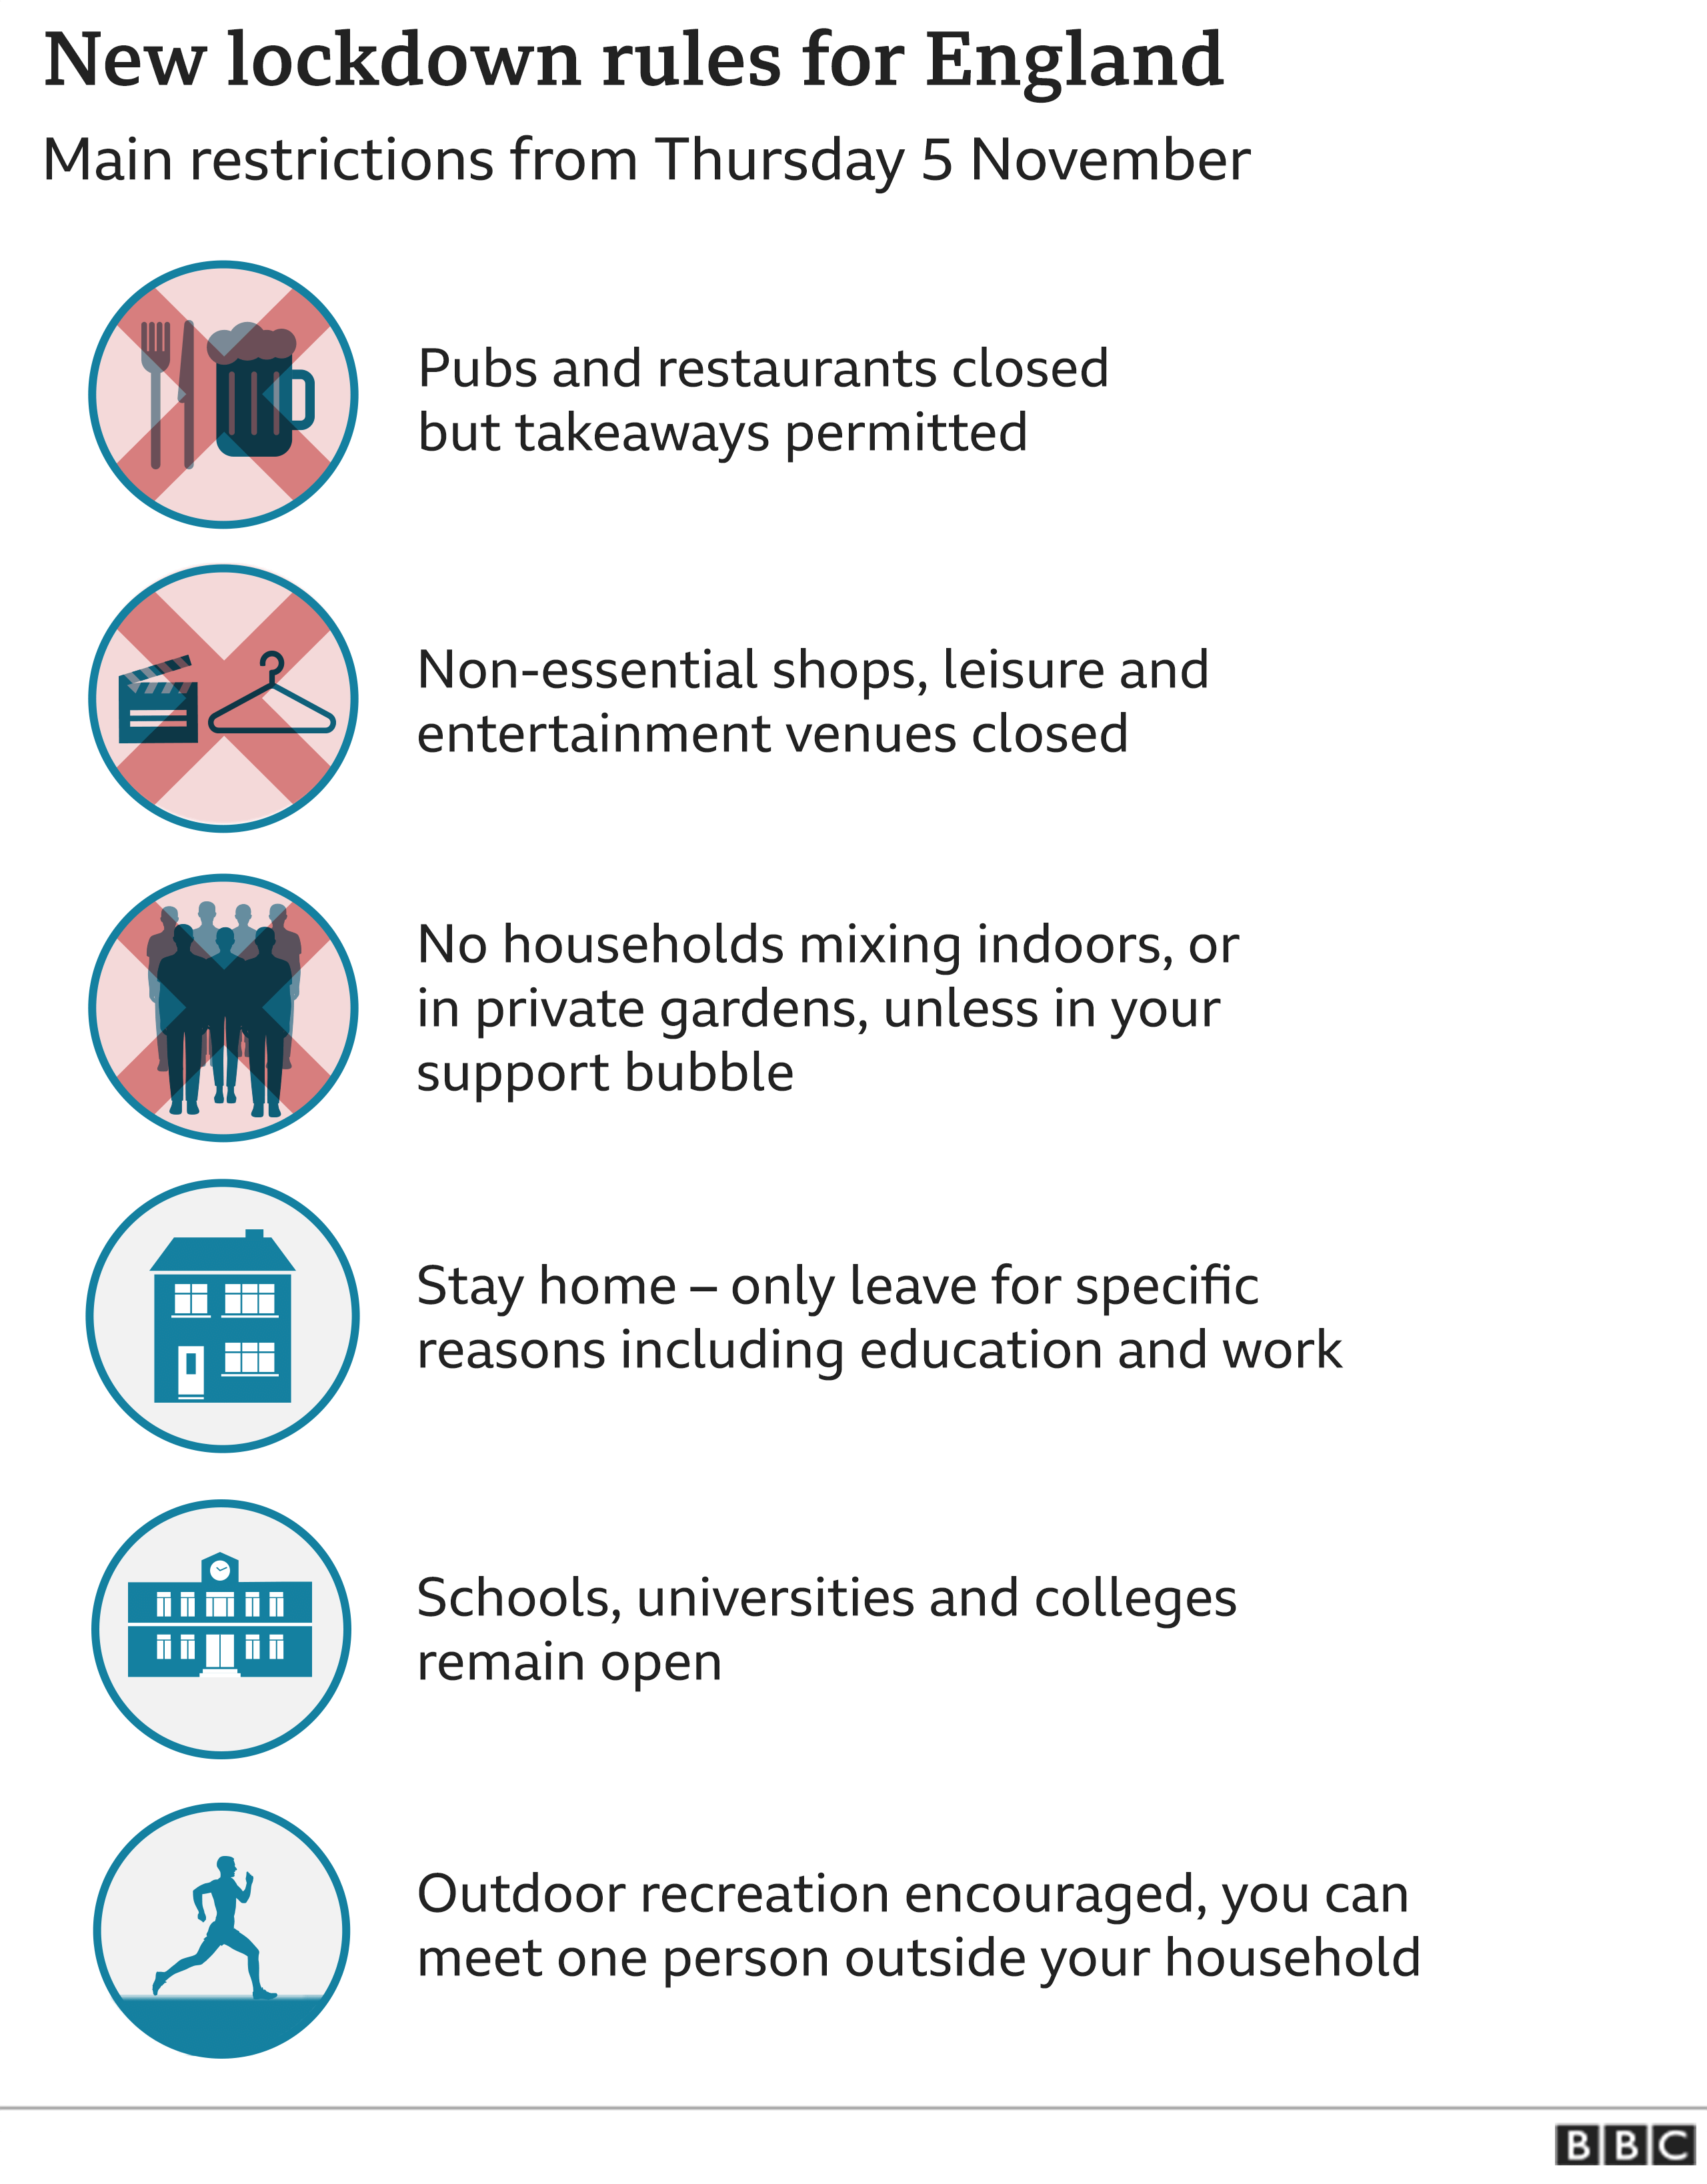 New lockdown rules from 5 November - Pubs and restaurants closed but takeaways permitted, Non-essential shops, leisure and entertainment venues closed, No household mixing inside, unless in your support bubble, Stay home – only leave for specific reasons including education and work